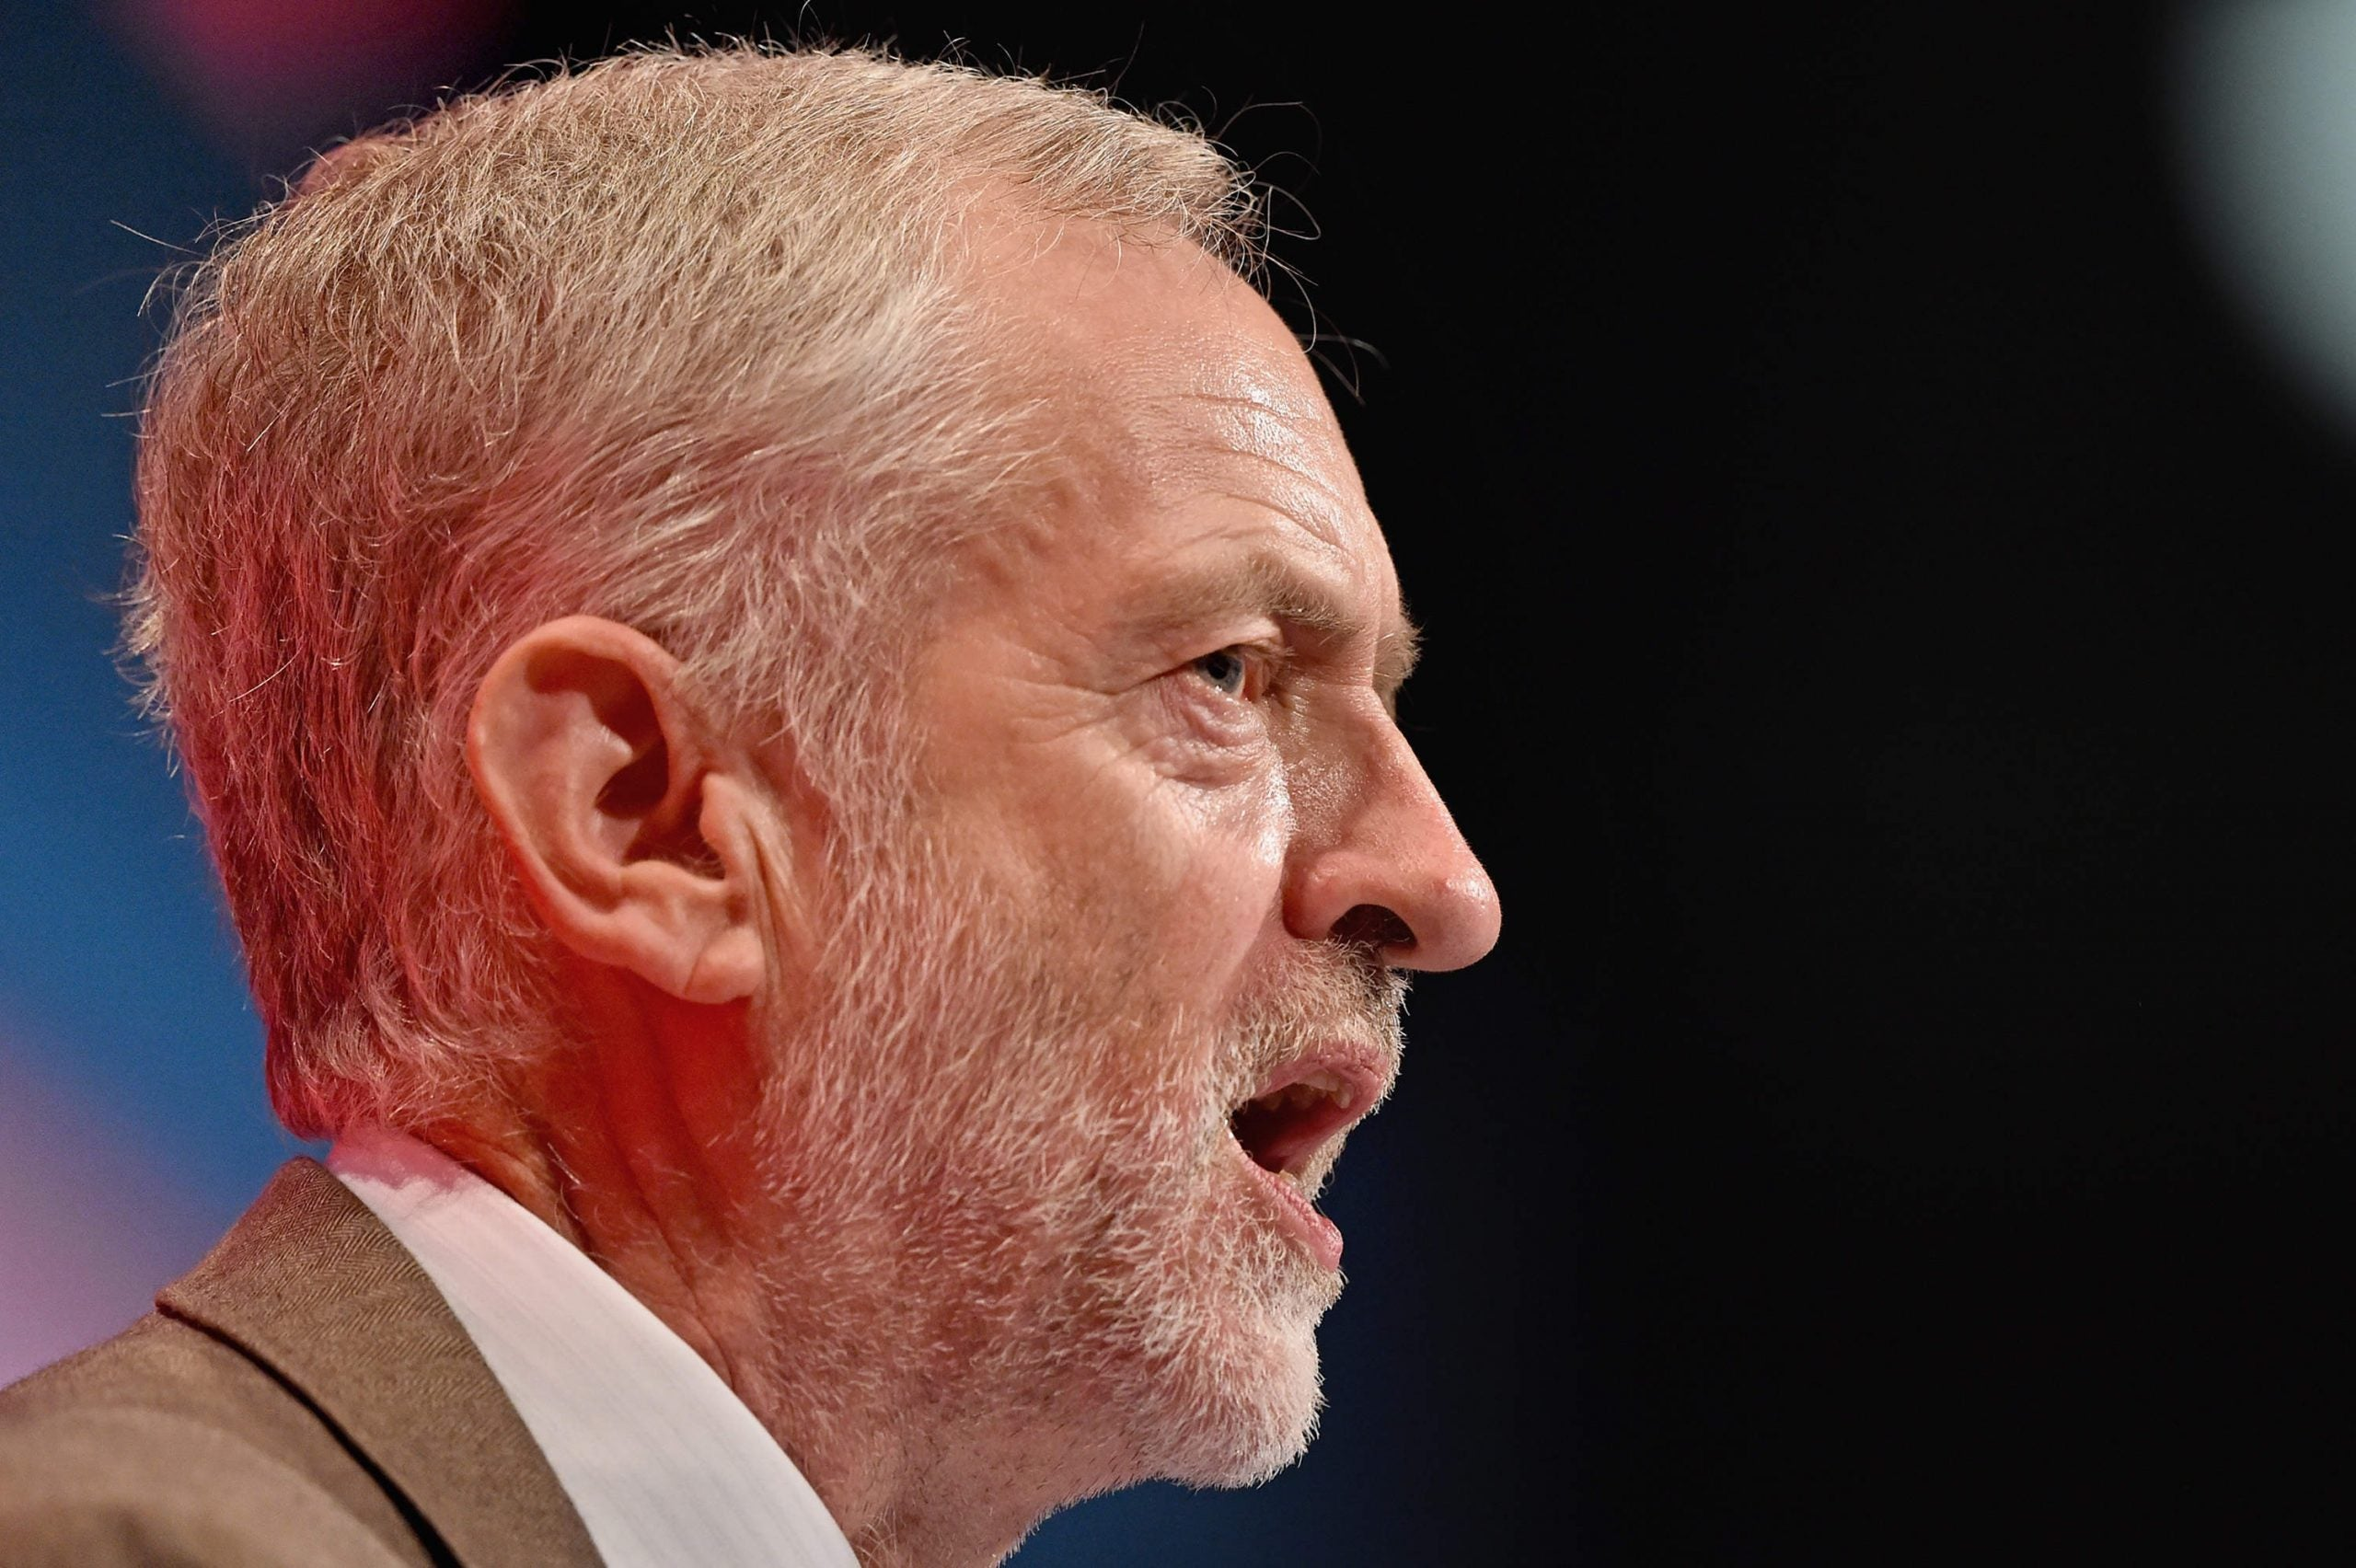 Labour's problems are bigger and wider than its leader